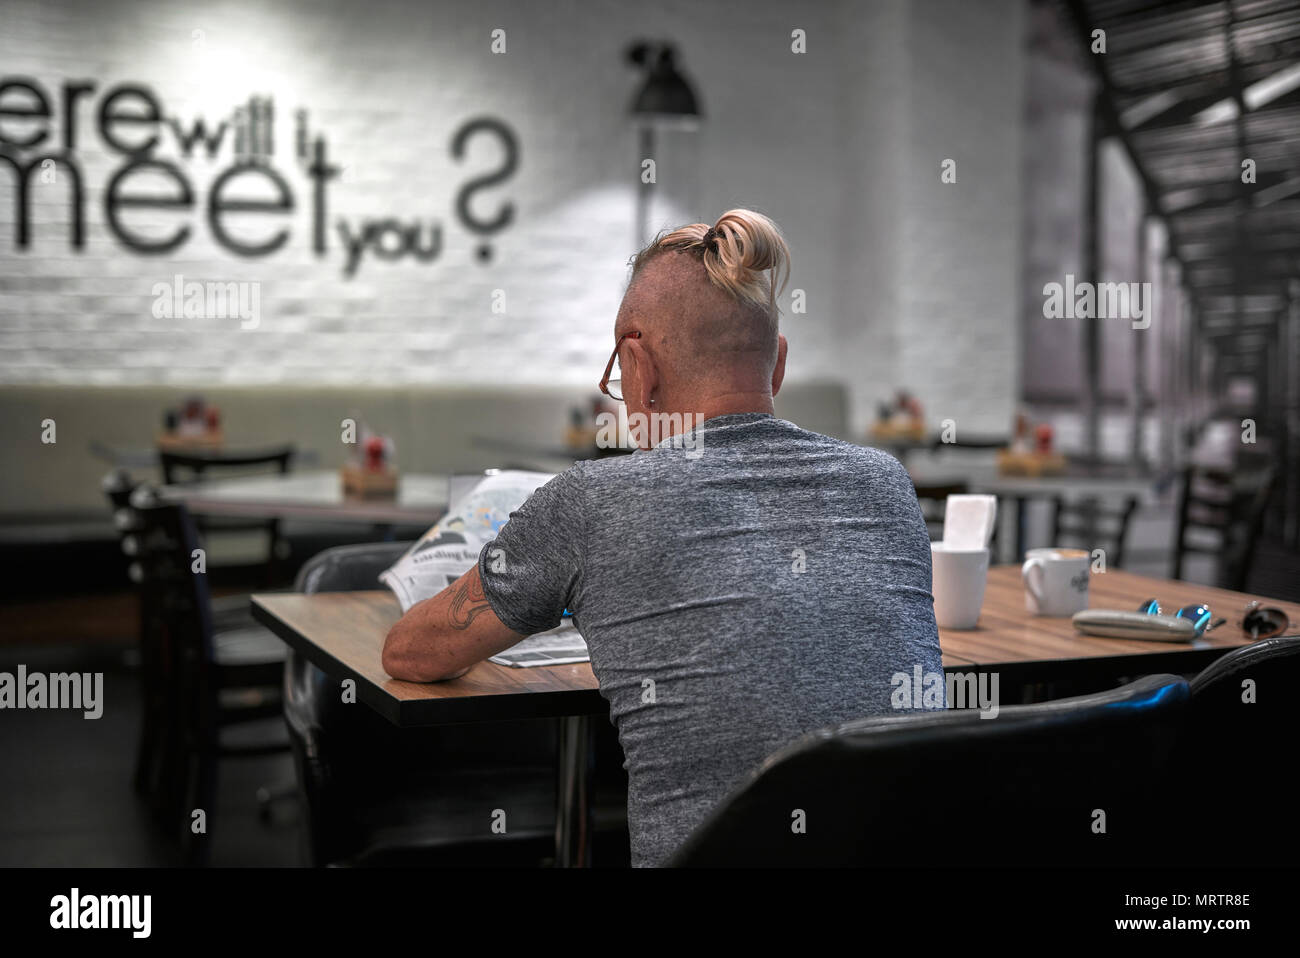 Man sporting shaven head and tied up ponytail hairstyle Stock Photo